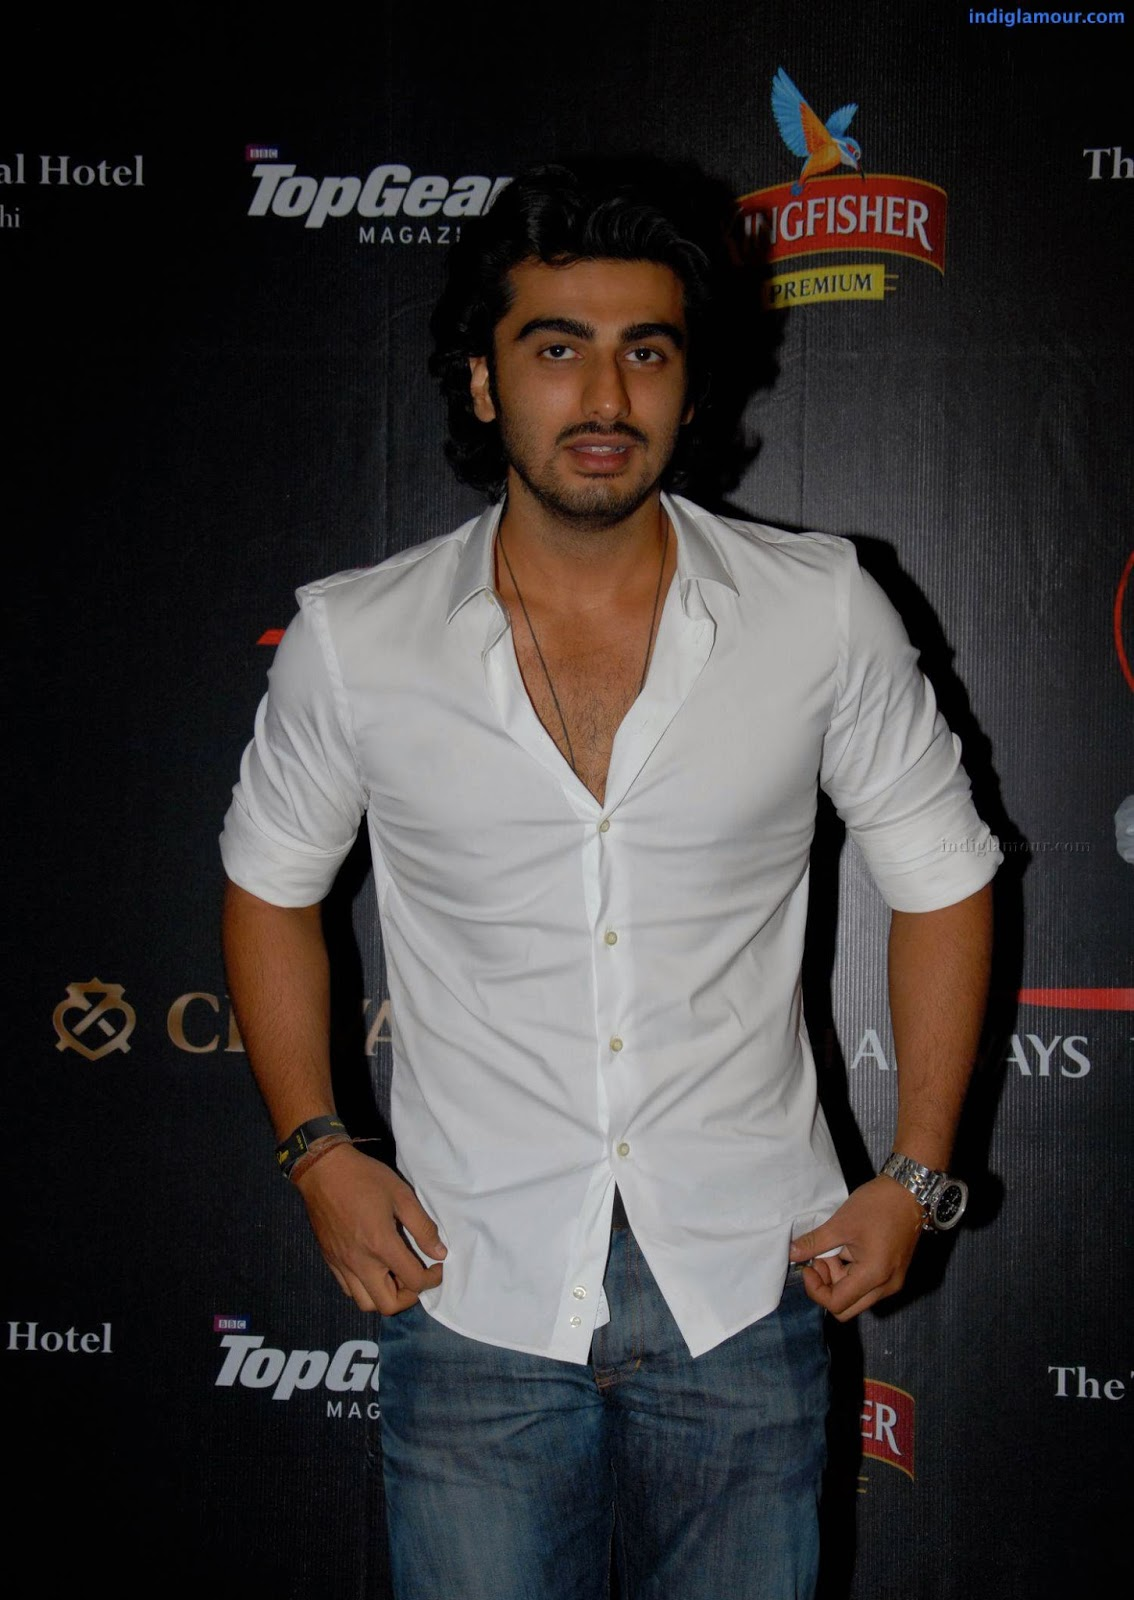 Dashing Arjun Kapoor Wallpapers Hd Free Download Unique Wallpapers